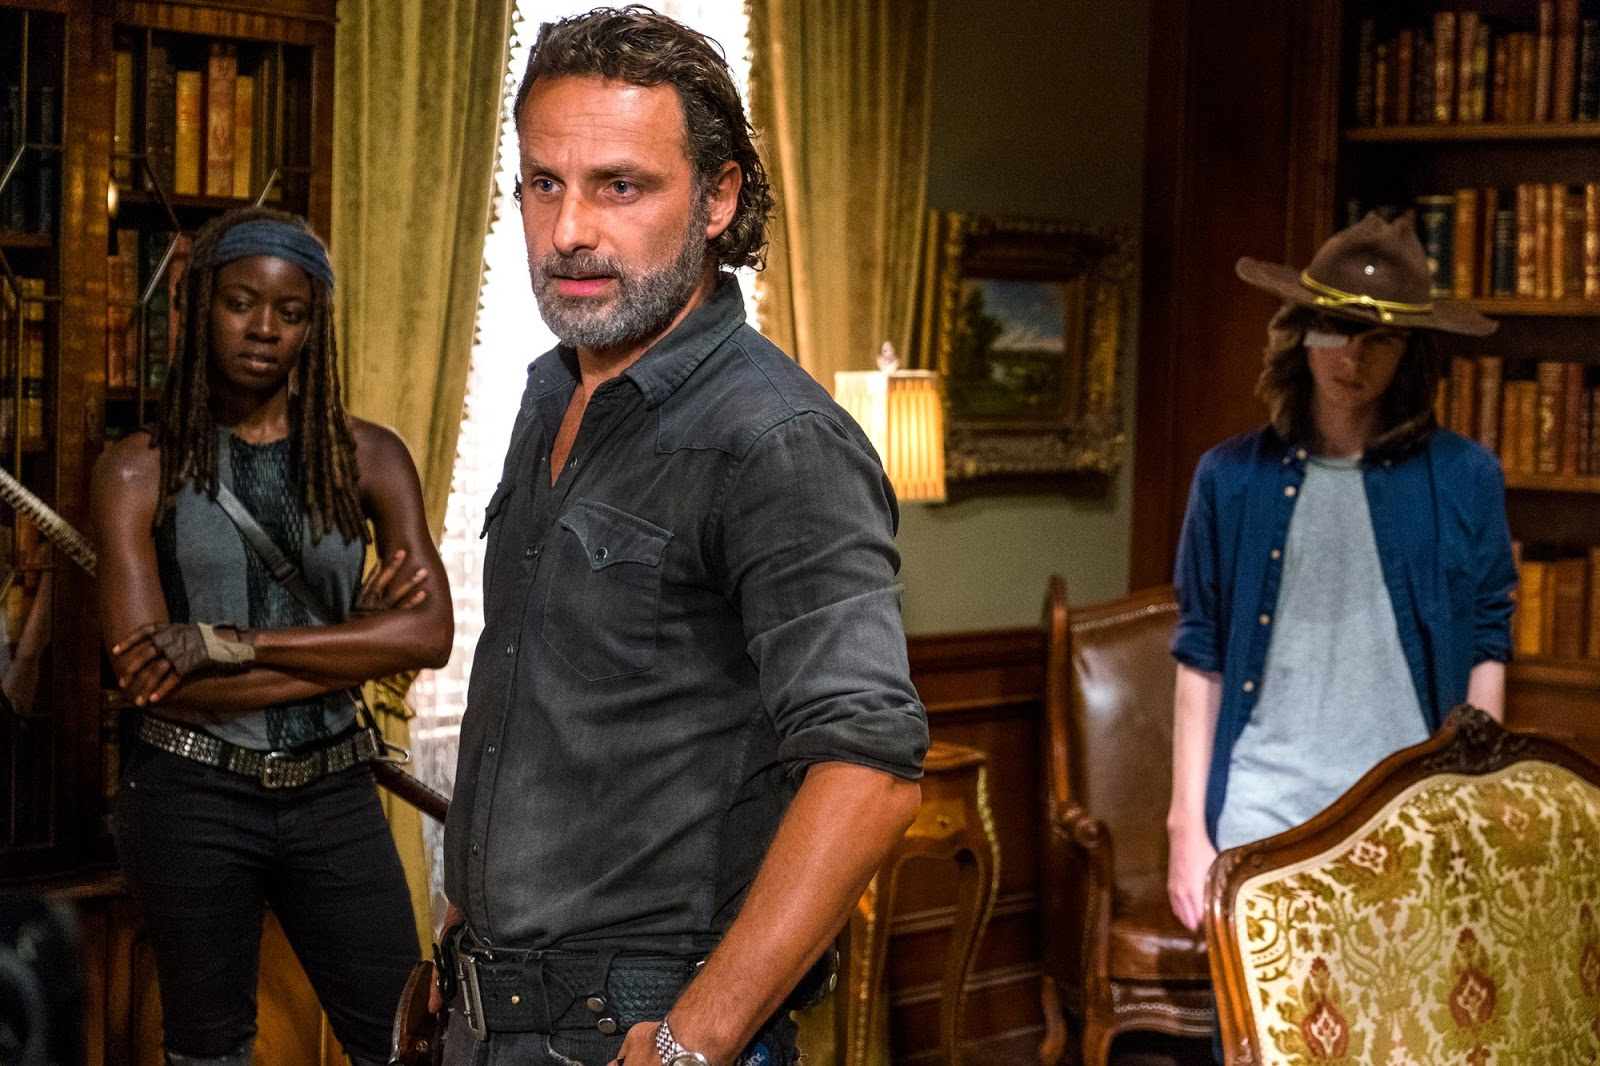 Rick Grimes, Michonne y Carl durante la reunión con Gregory en Hilltop en el episodio Rock in the Road